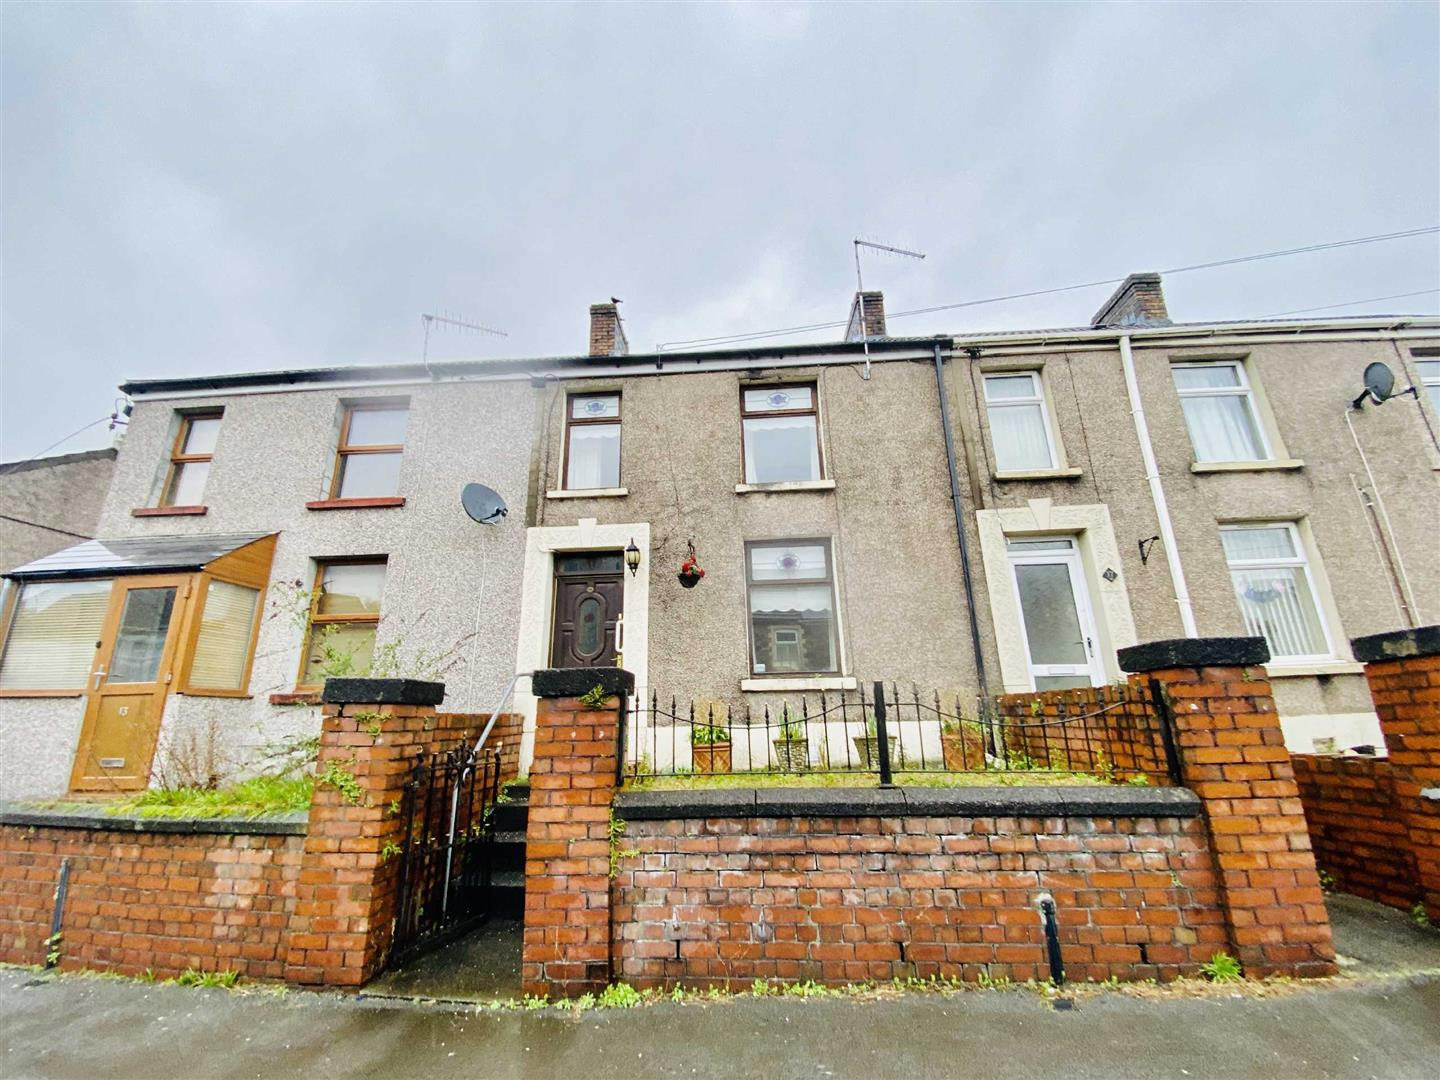 Sterry Road, Gowerton, Swansea, SA4 3BS